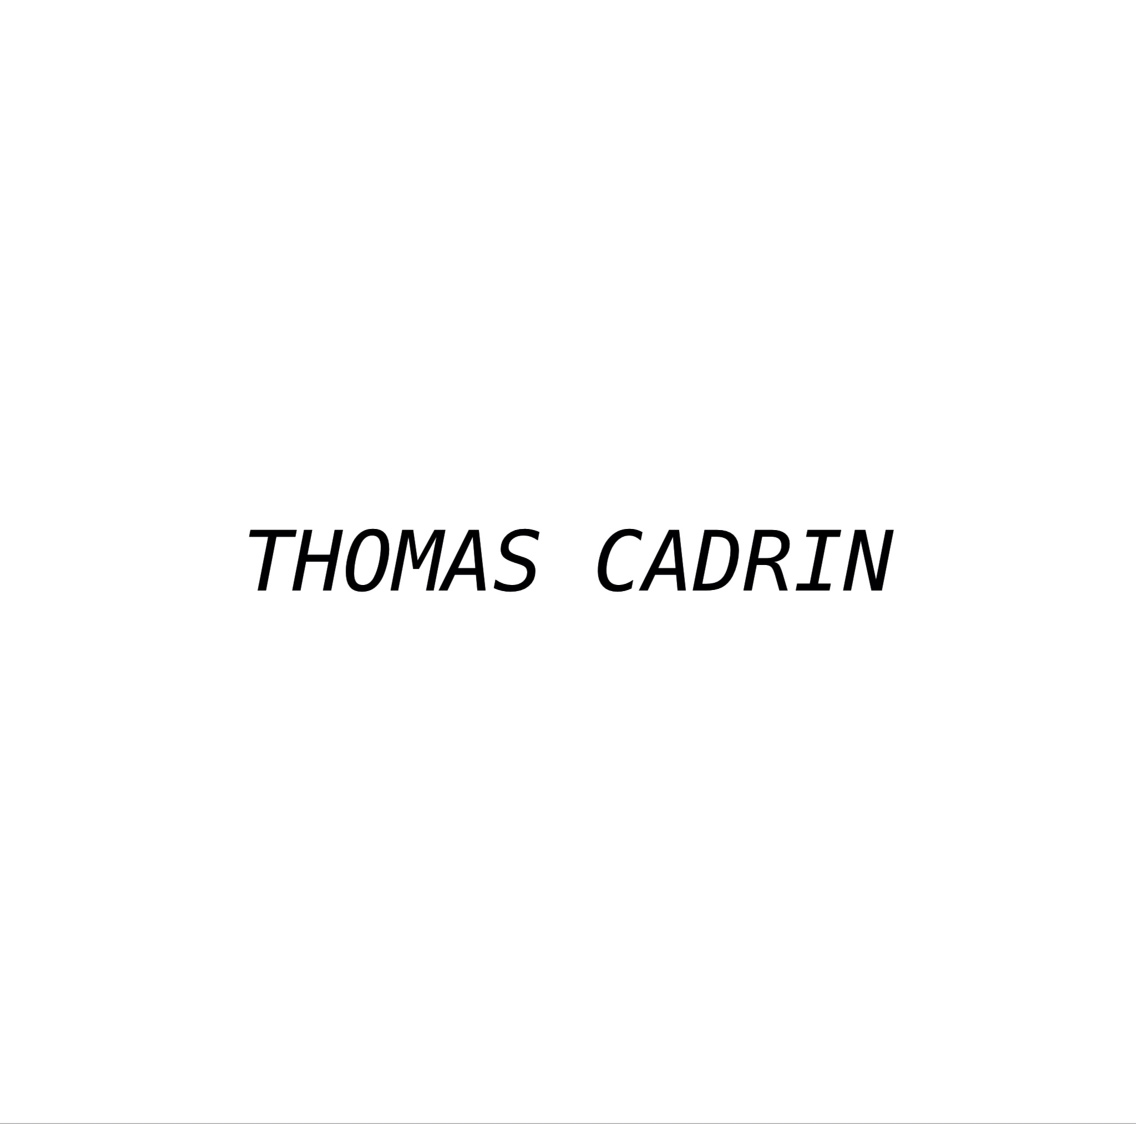 THOMAS CADRIN